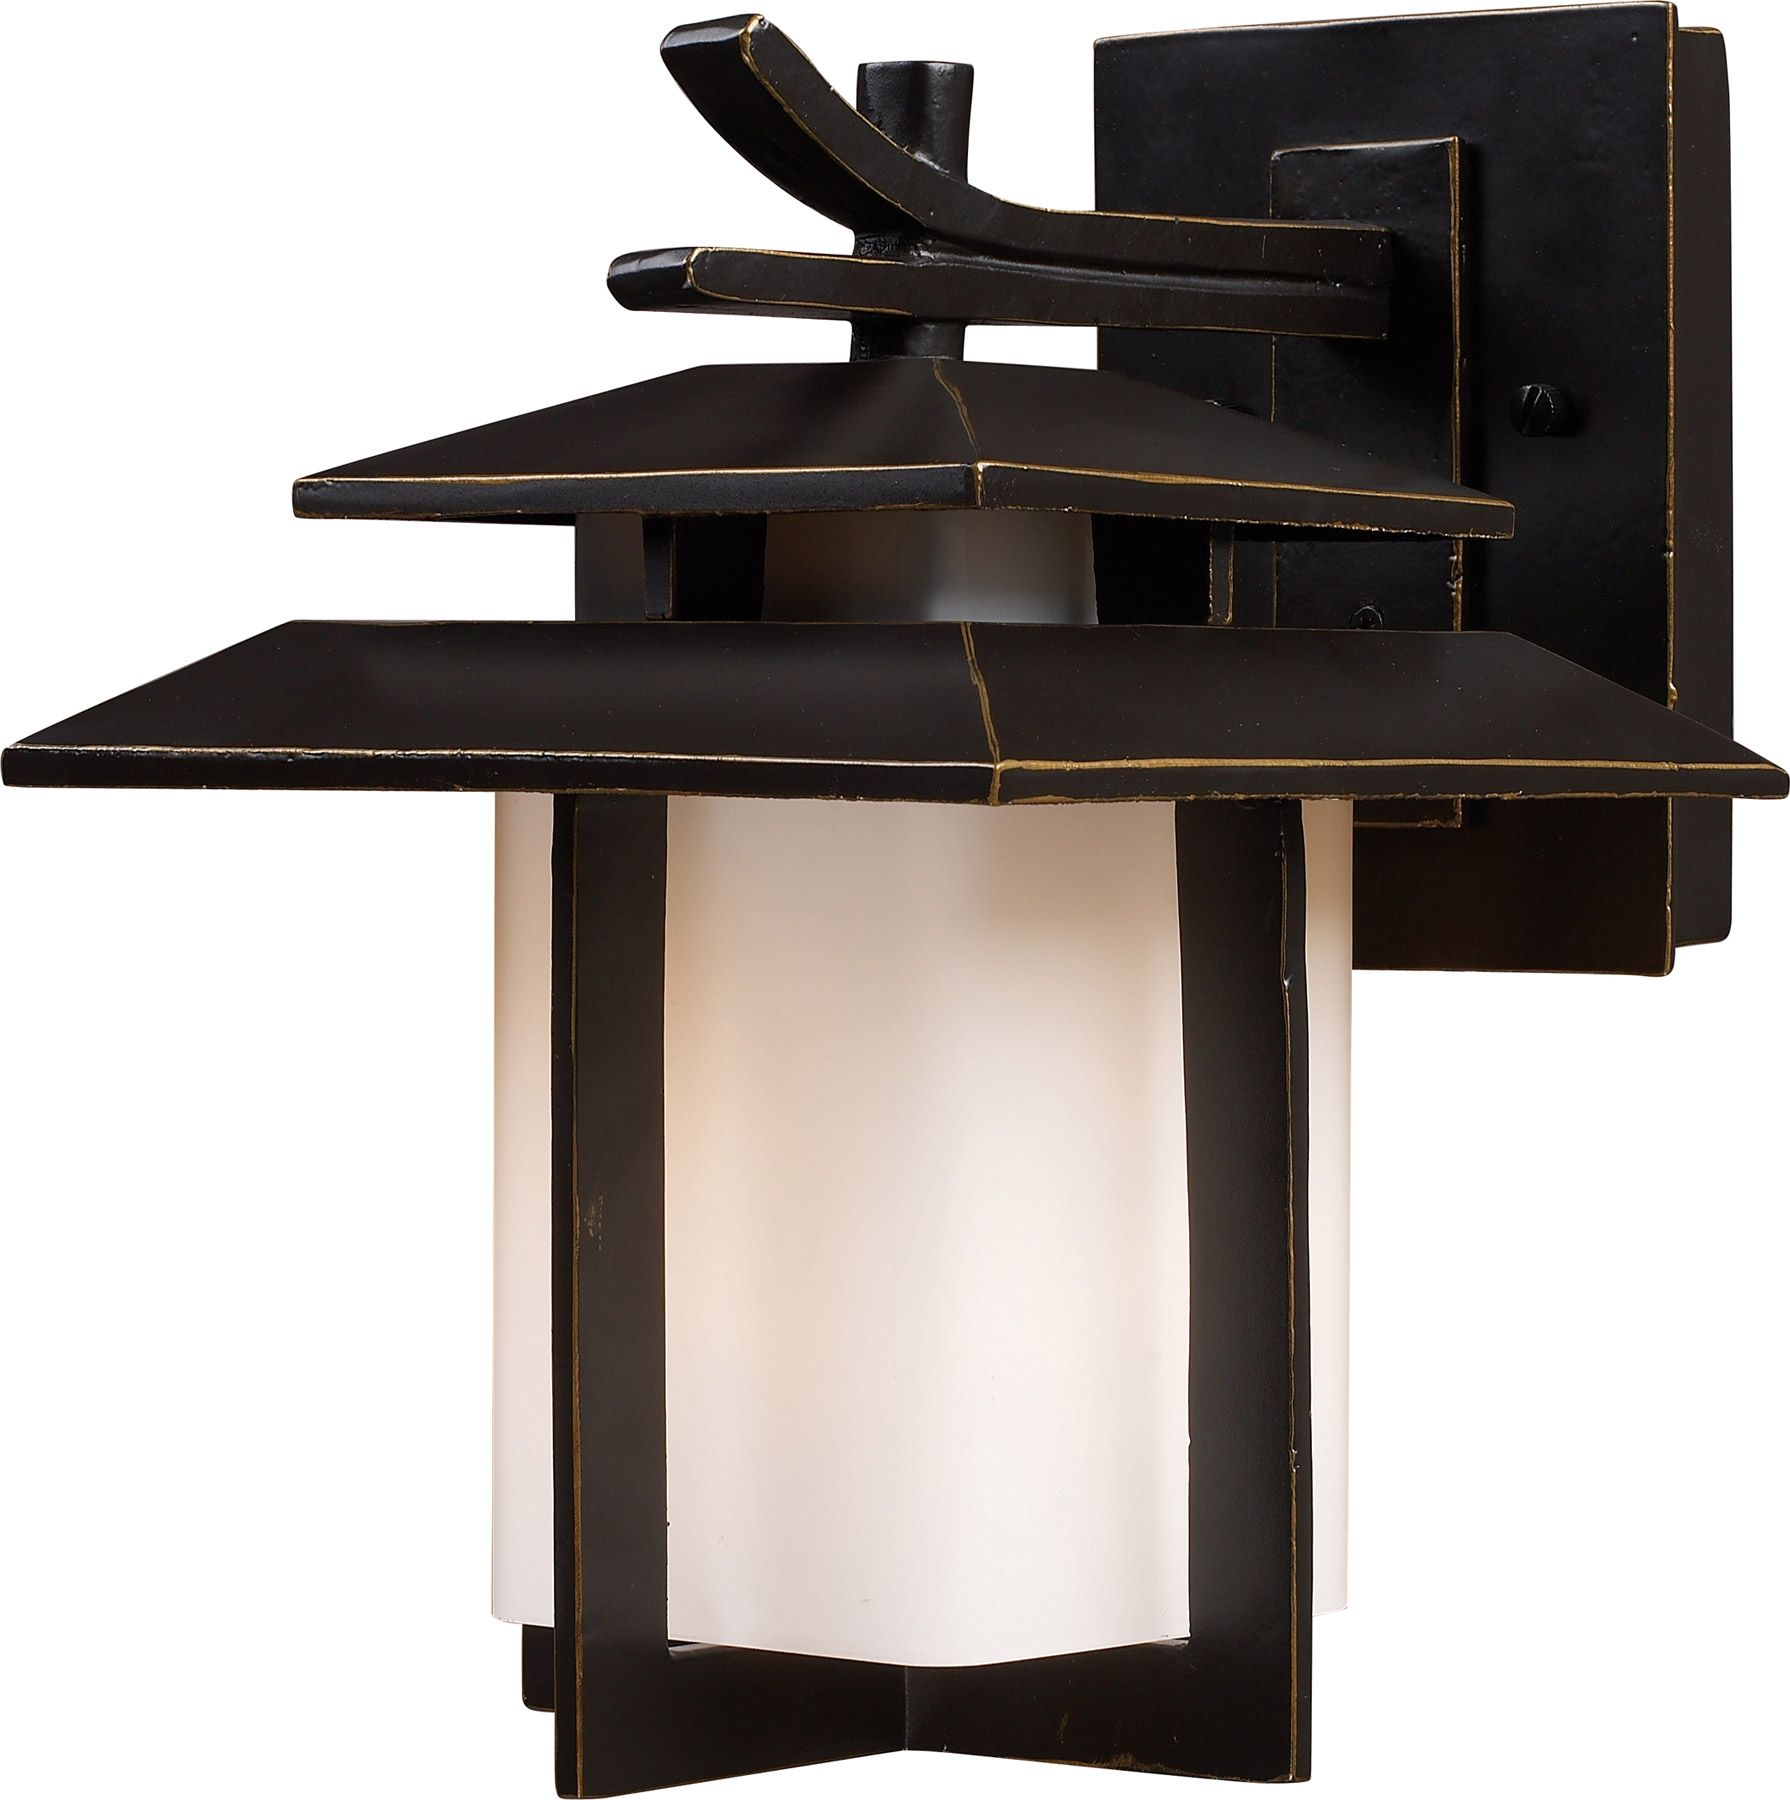 Furniture japanese lantern wood outdoor wall mounted lighting furniture japanese lantern wood outdoor wall mounted lighting fixtures painted with black color with white arubaitofo Images